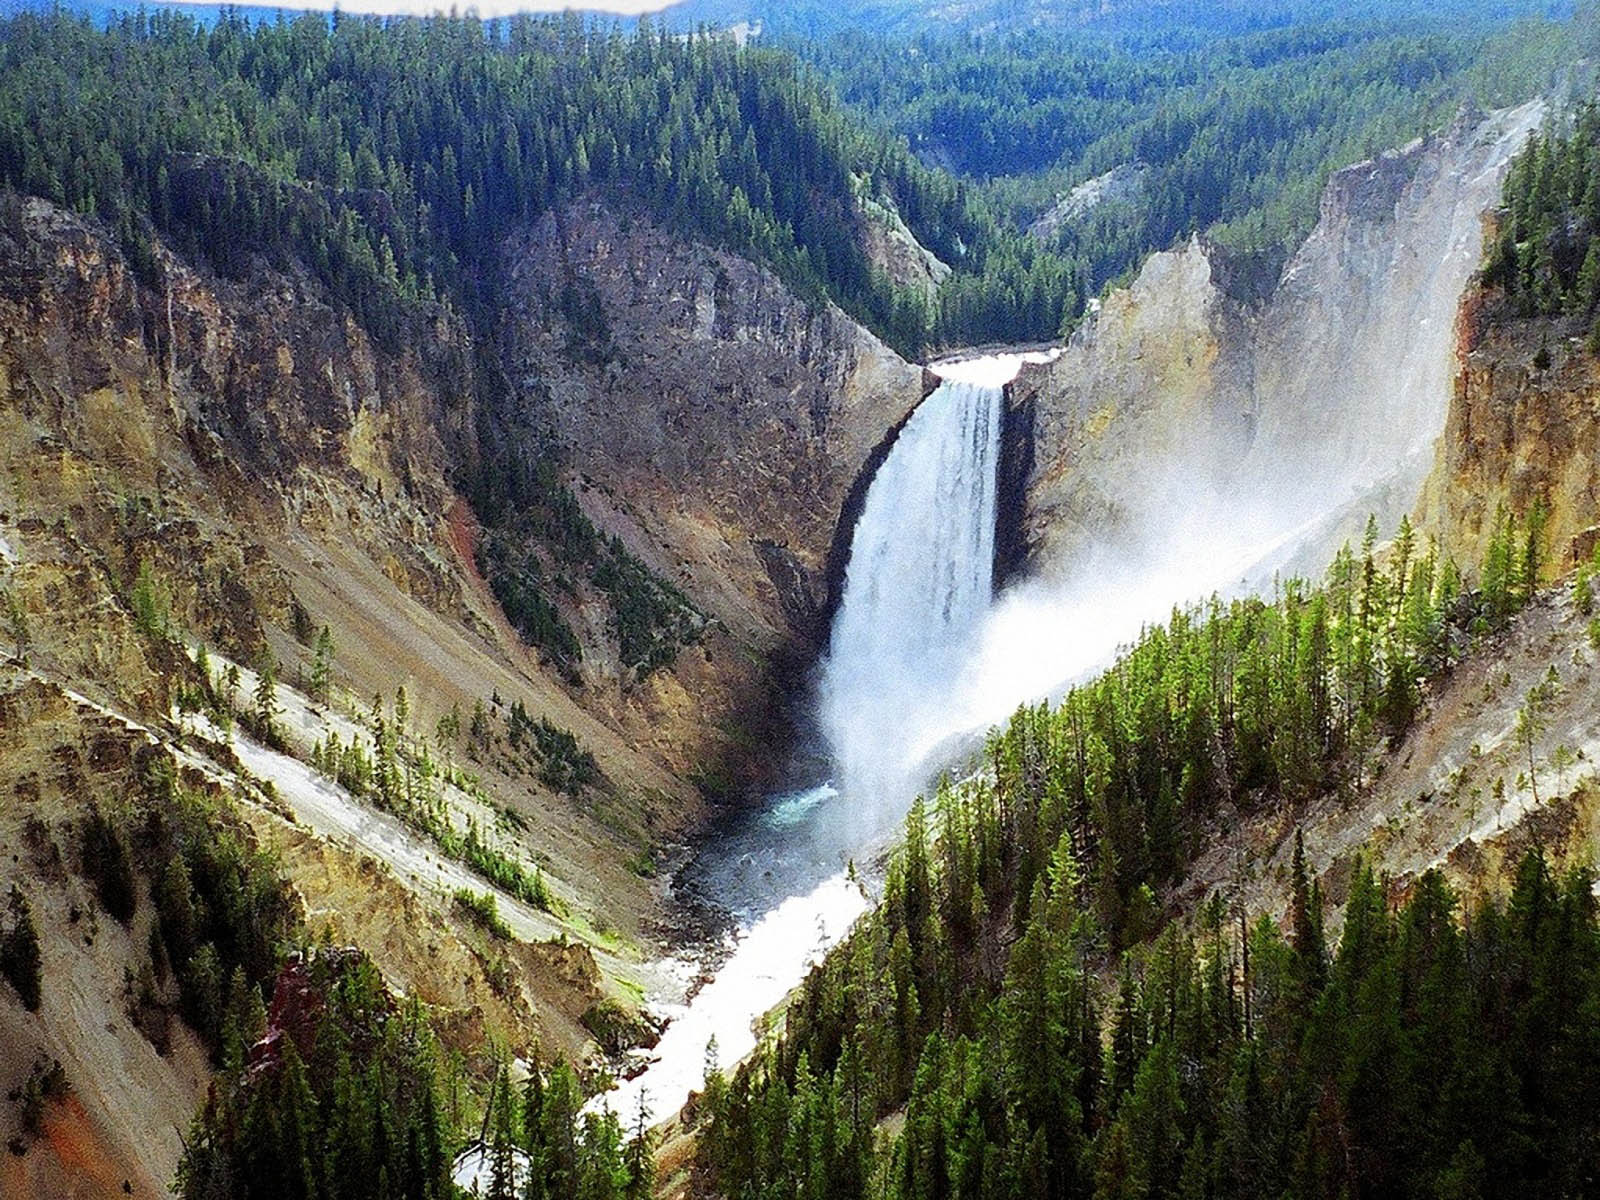 Yellowstone Park 1600x1200 WallpapersYellowstone National Park 1600x1200